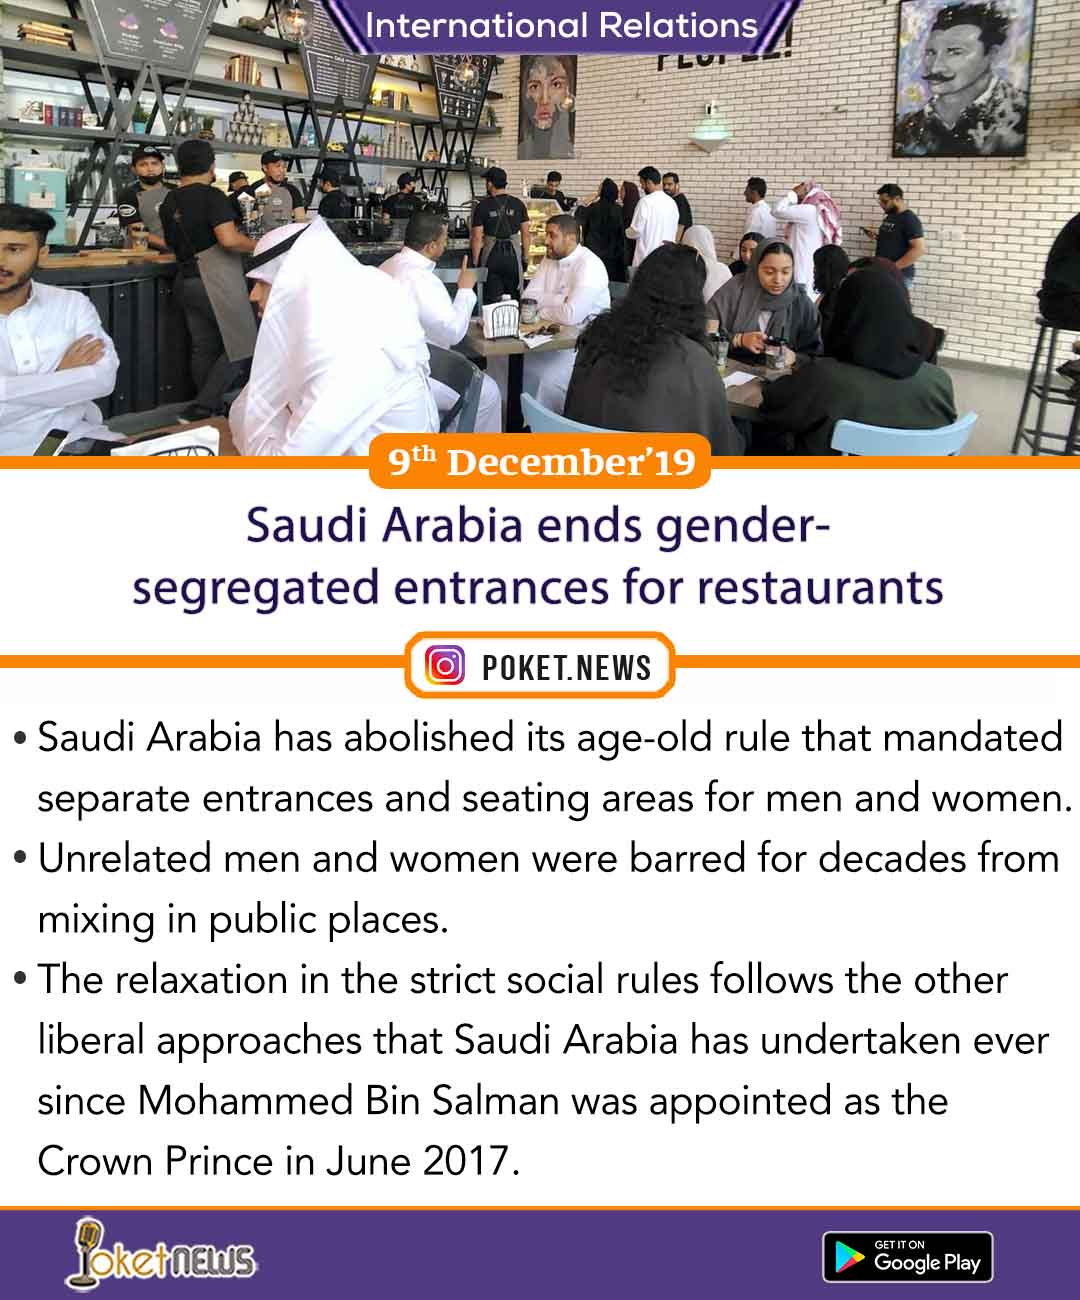 Saudi Arabia ends gender- segregated entrances for restaurants